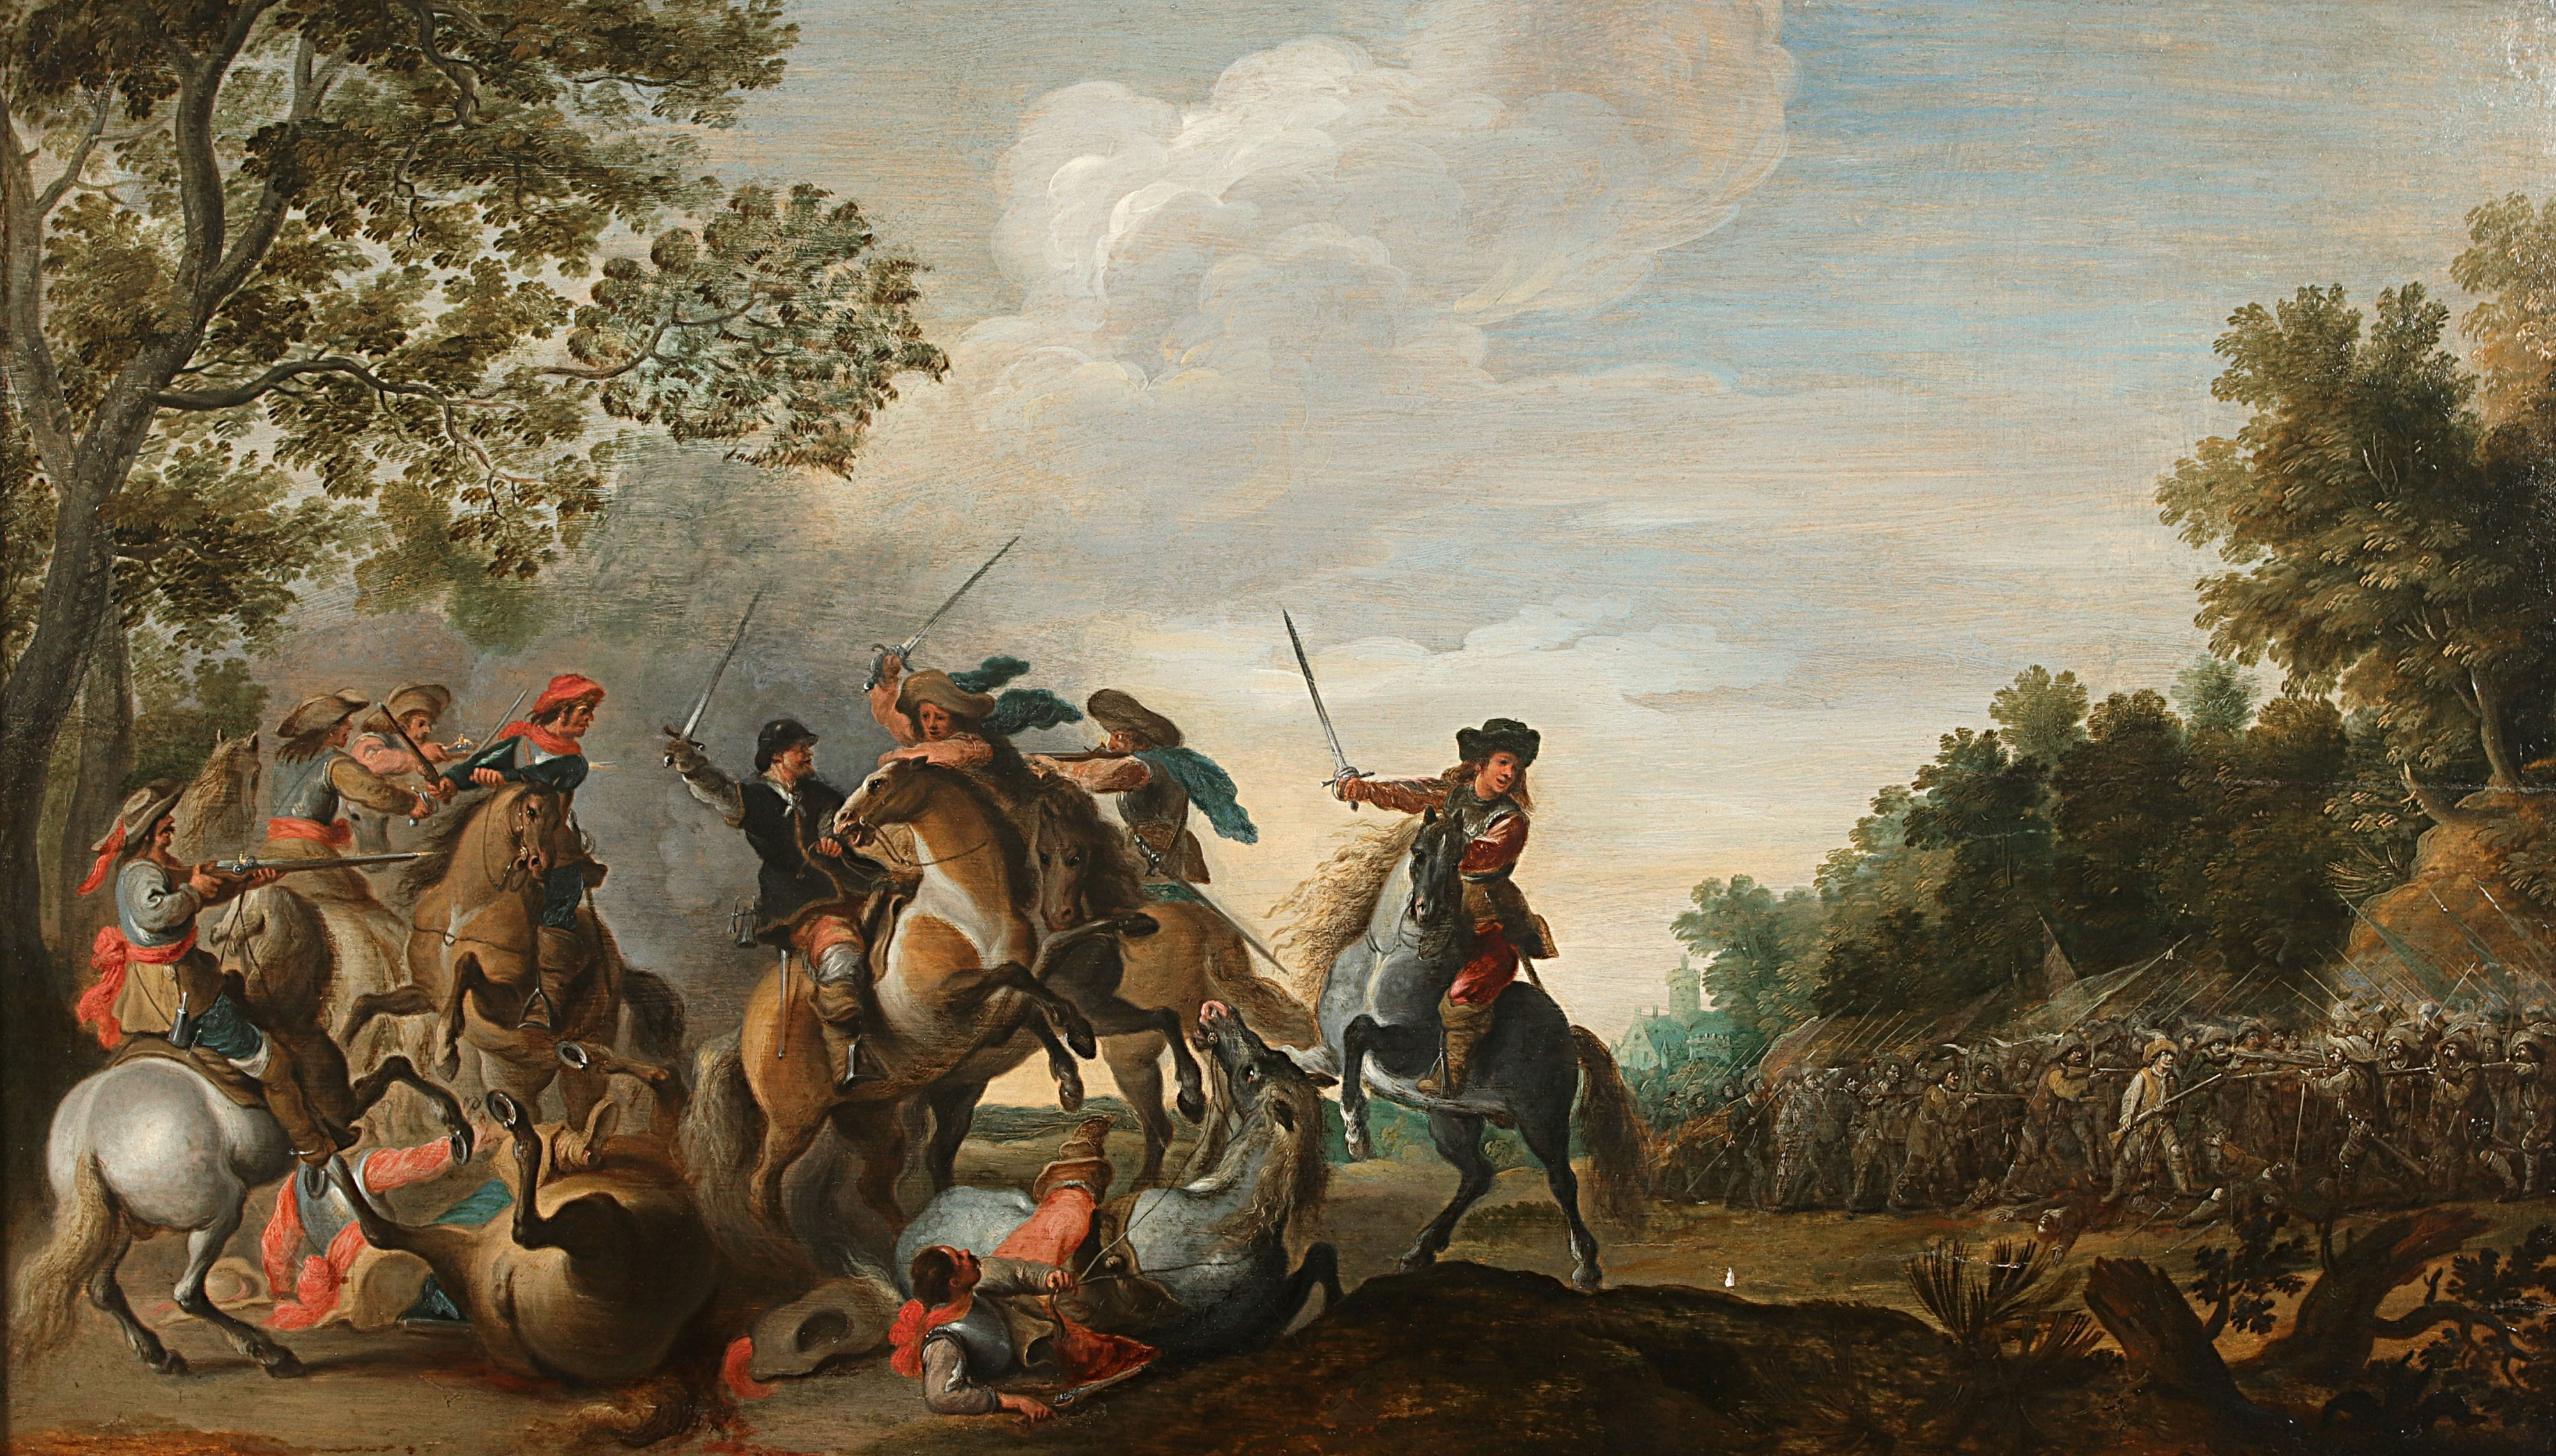 Pieter Meulenaer, A Cavalry Engagement, oil on panel. Photo: Hessink's